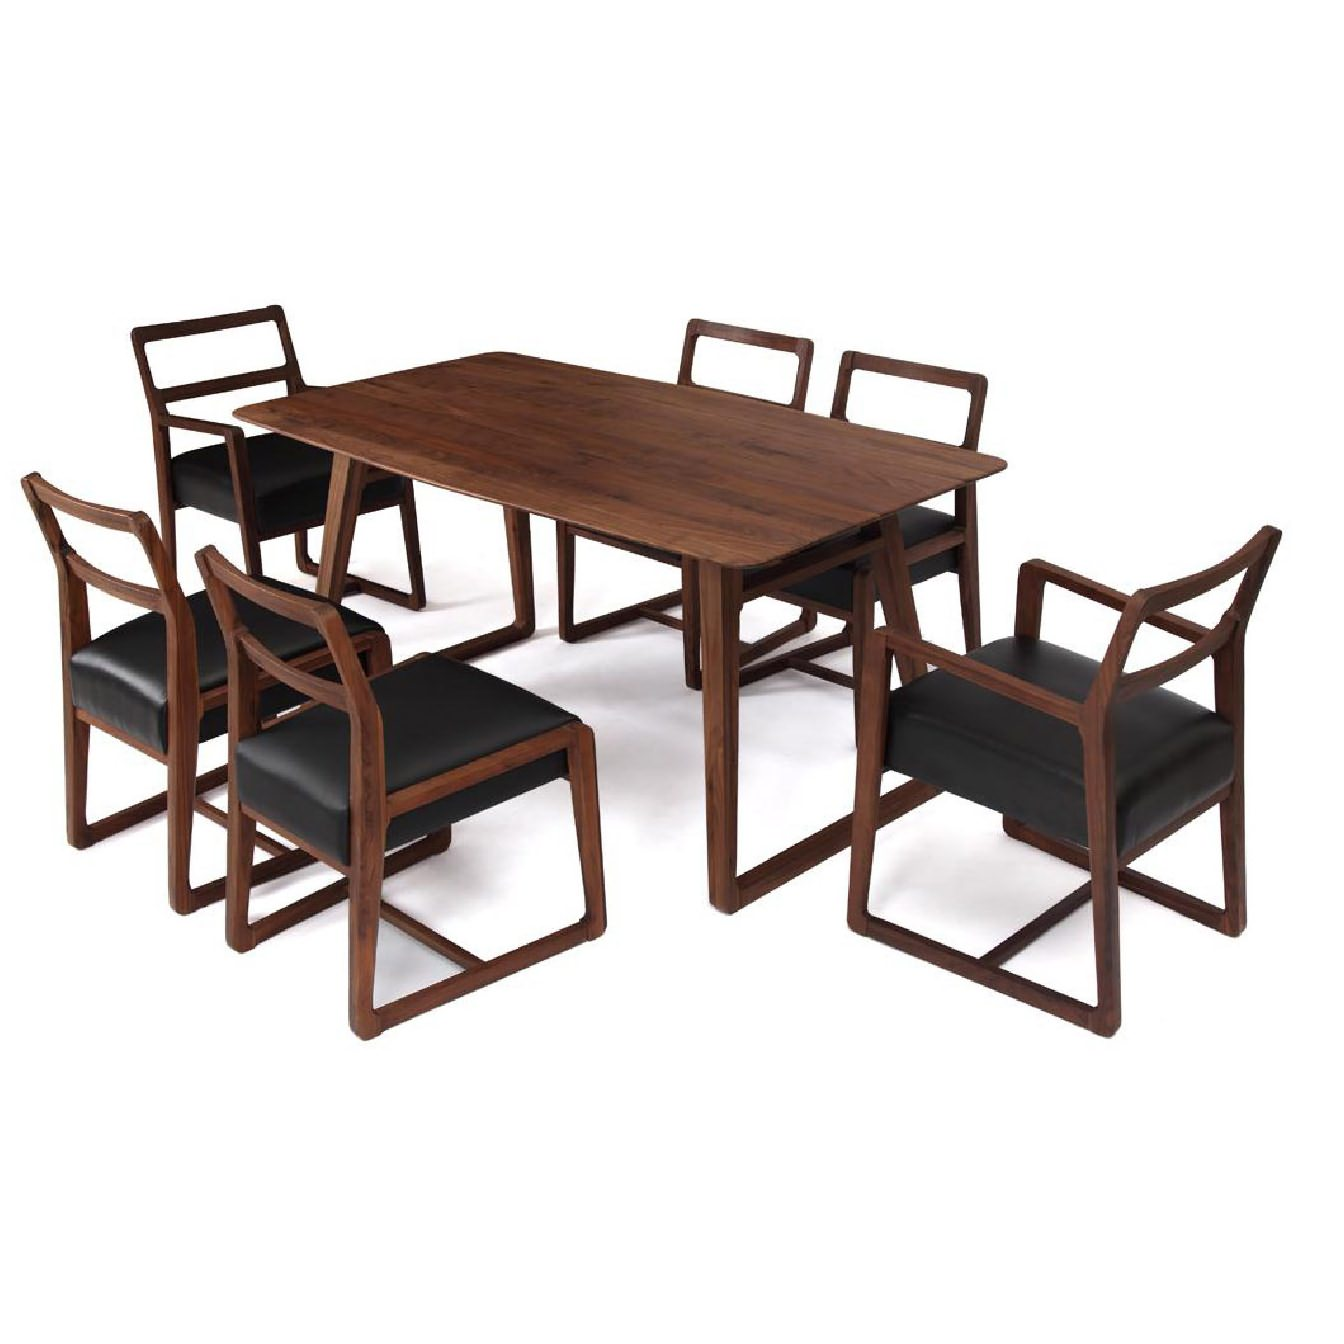 Dining set|Dining room Furniture|Dining table